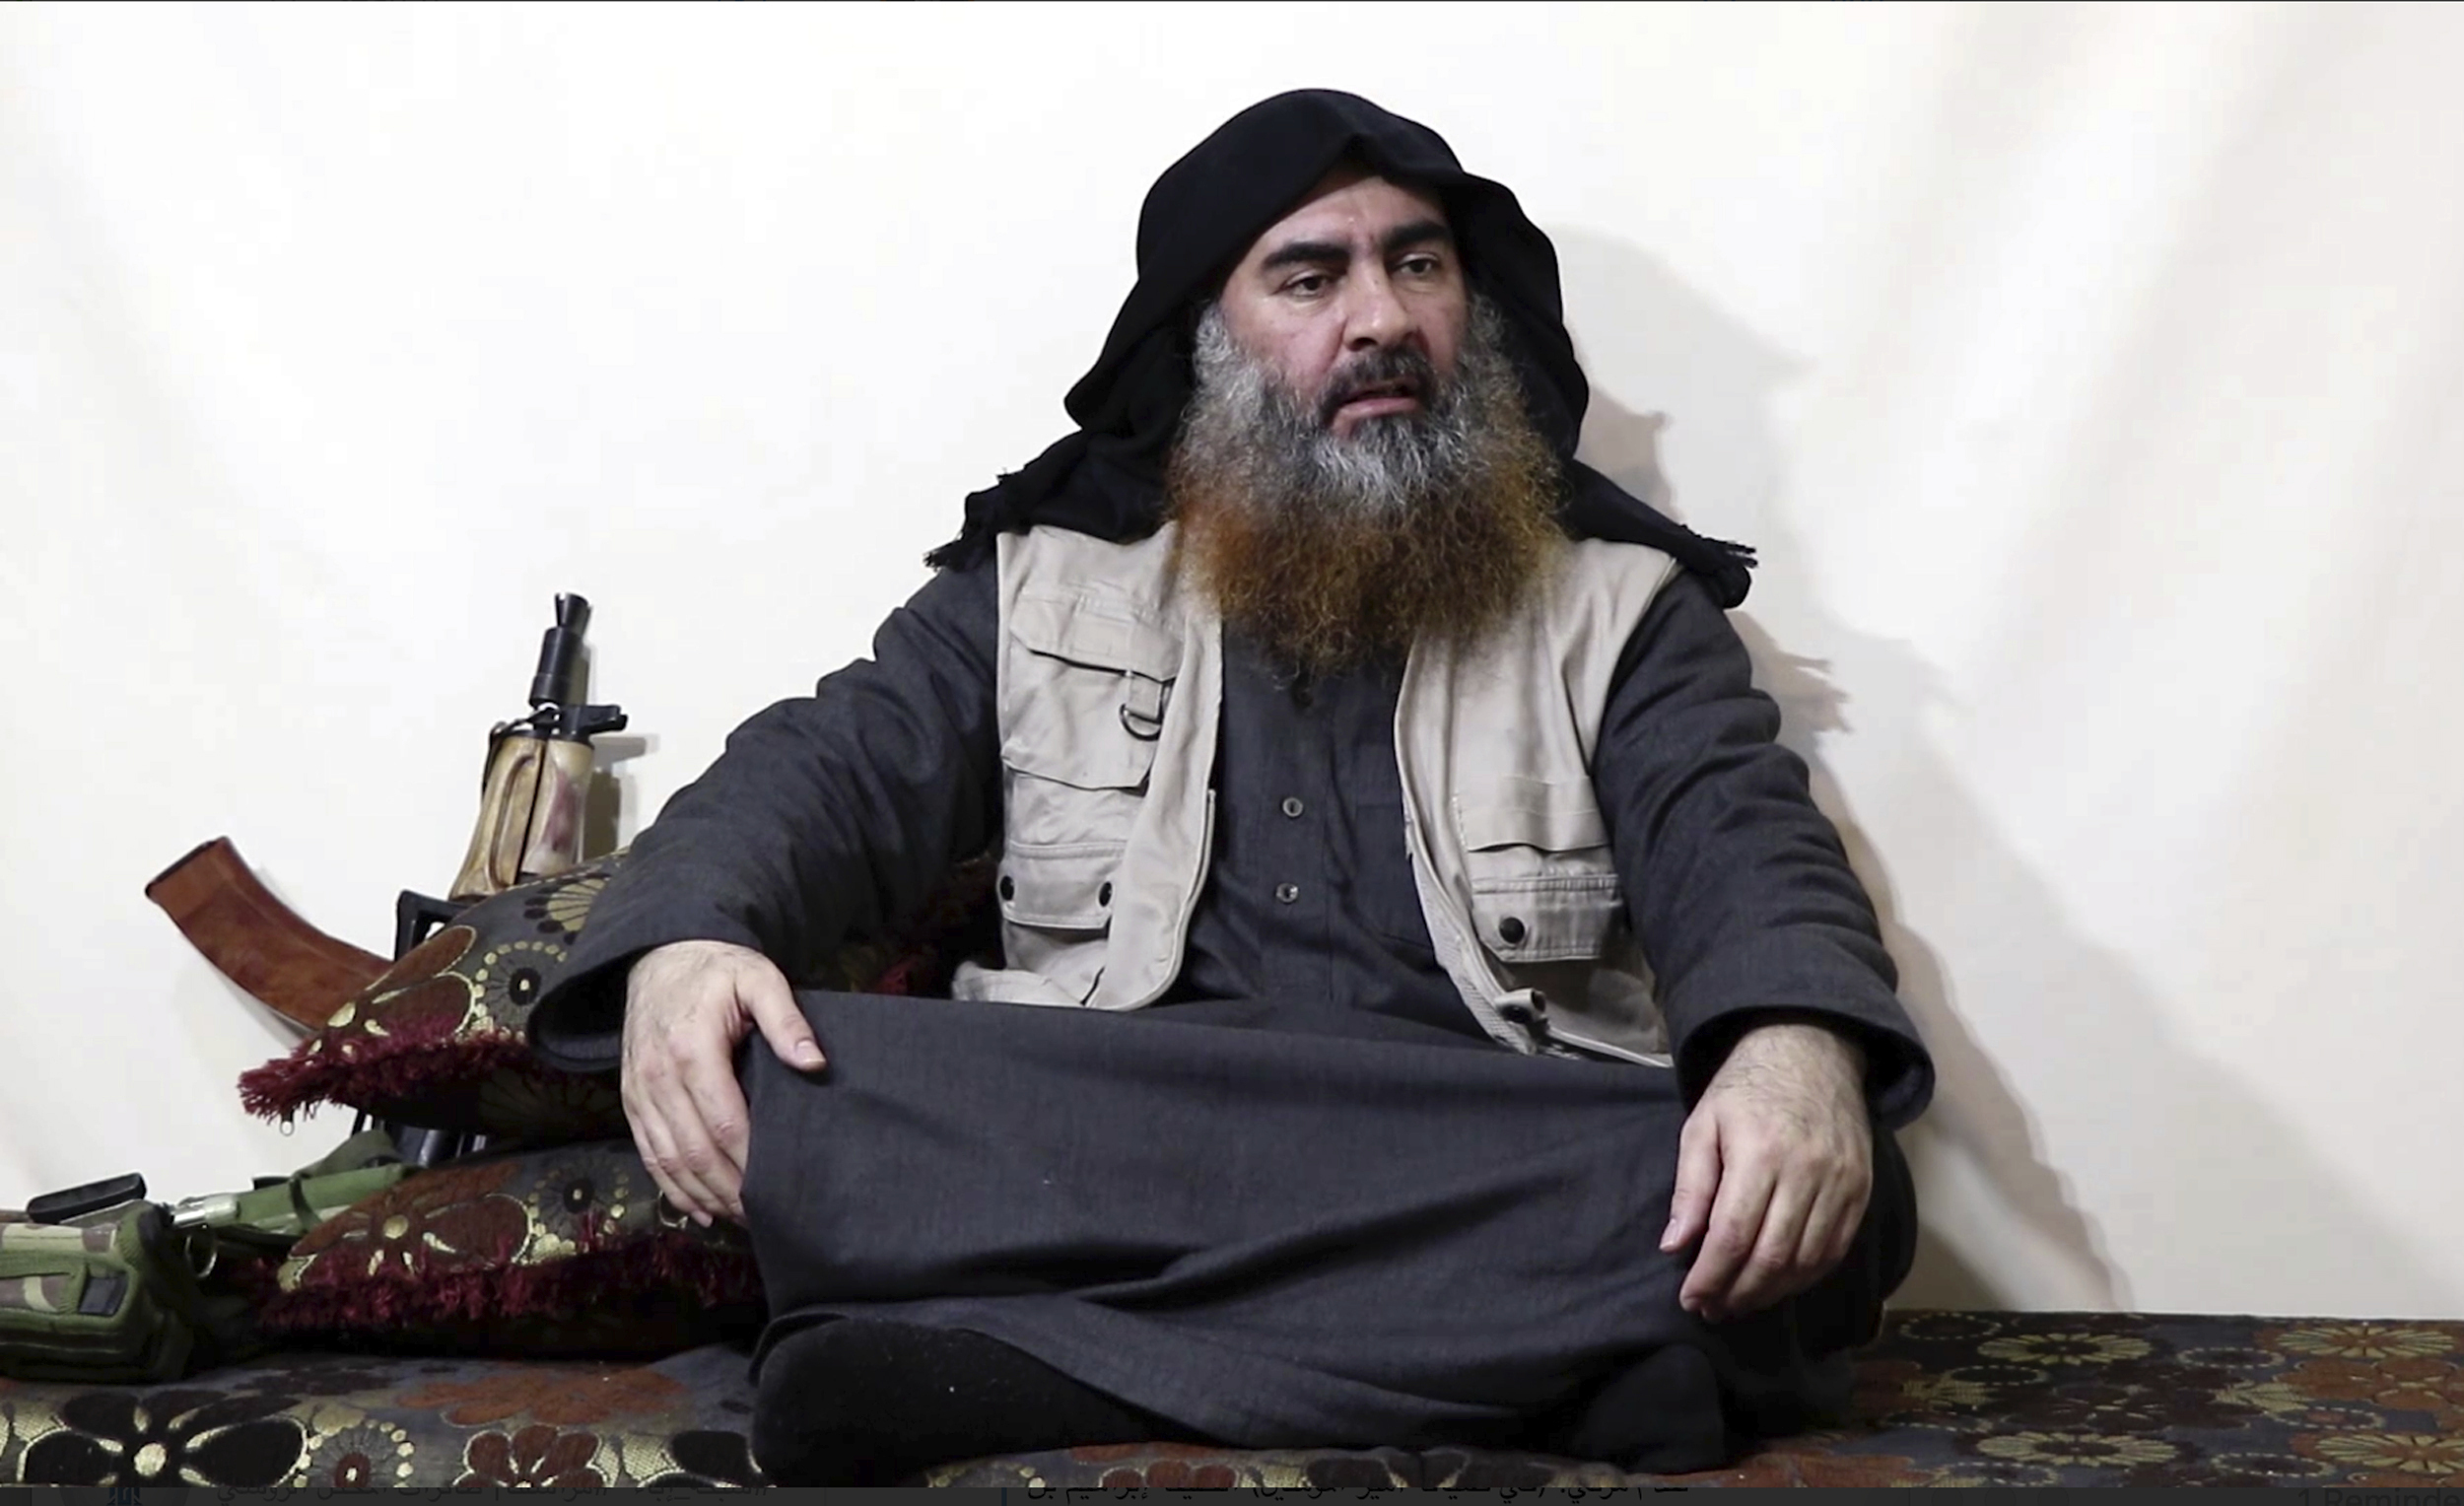 This file image made from video posted on a militant website April 29, 2019, purports to show Abu Bakr al-Baghdadi, being interviewed by his group's Al-Furqan media outlet